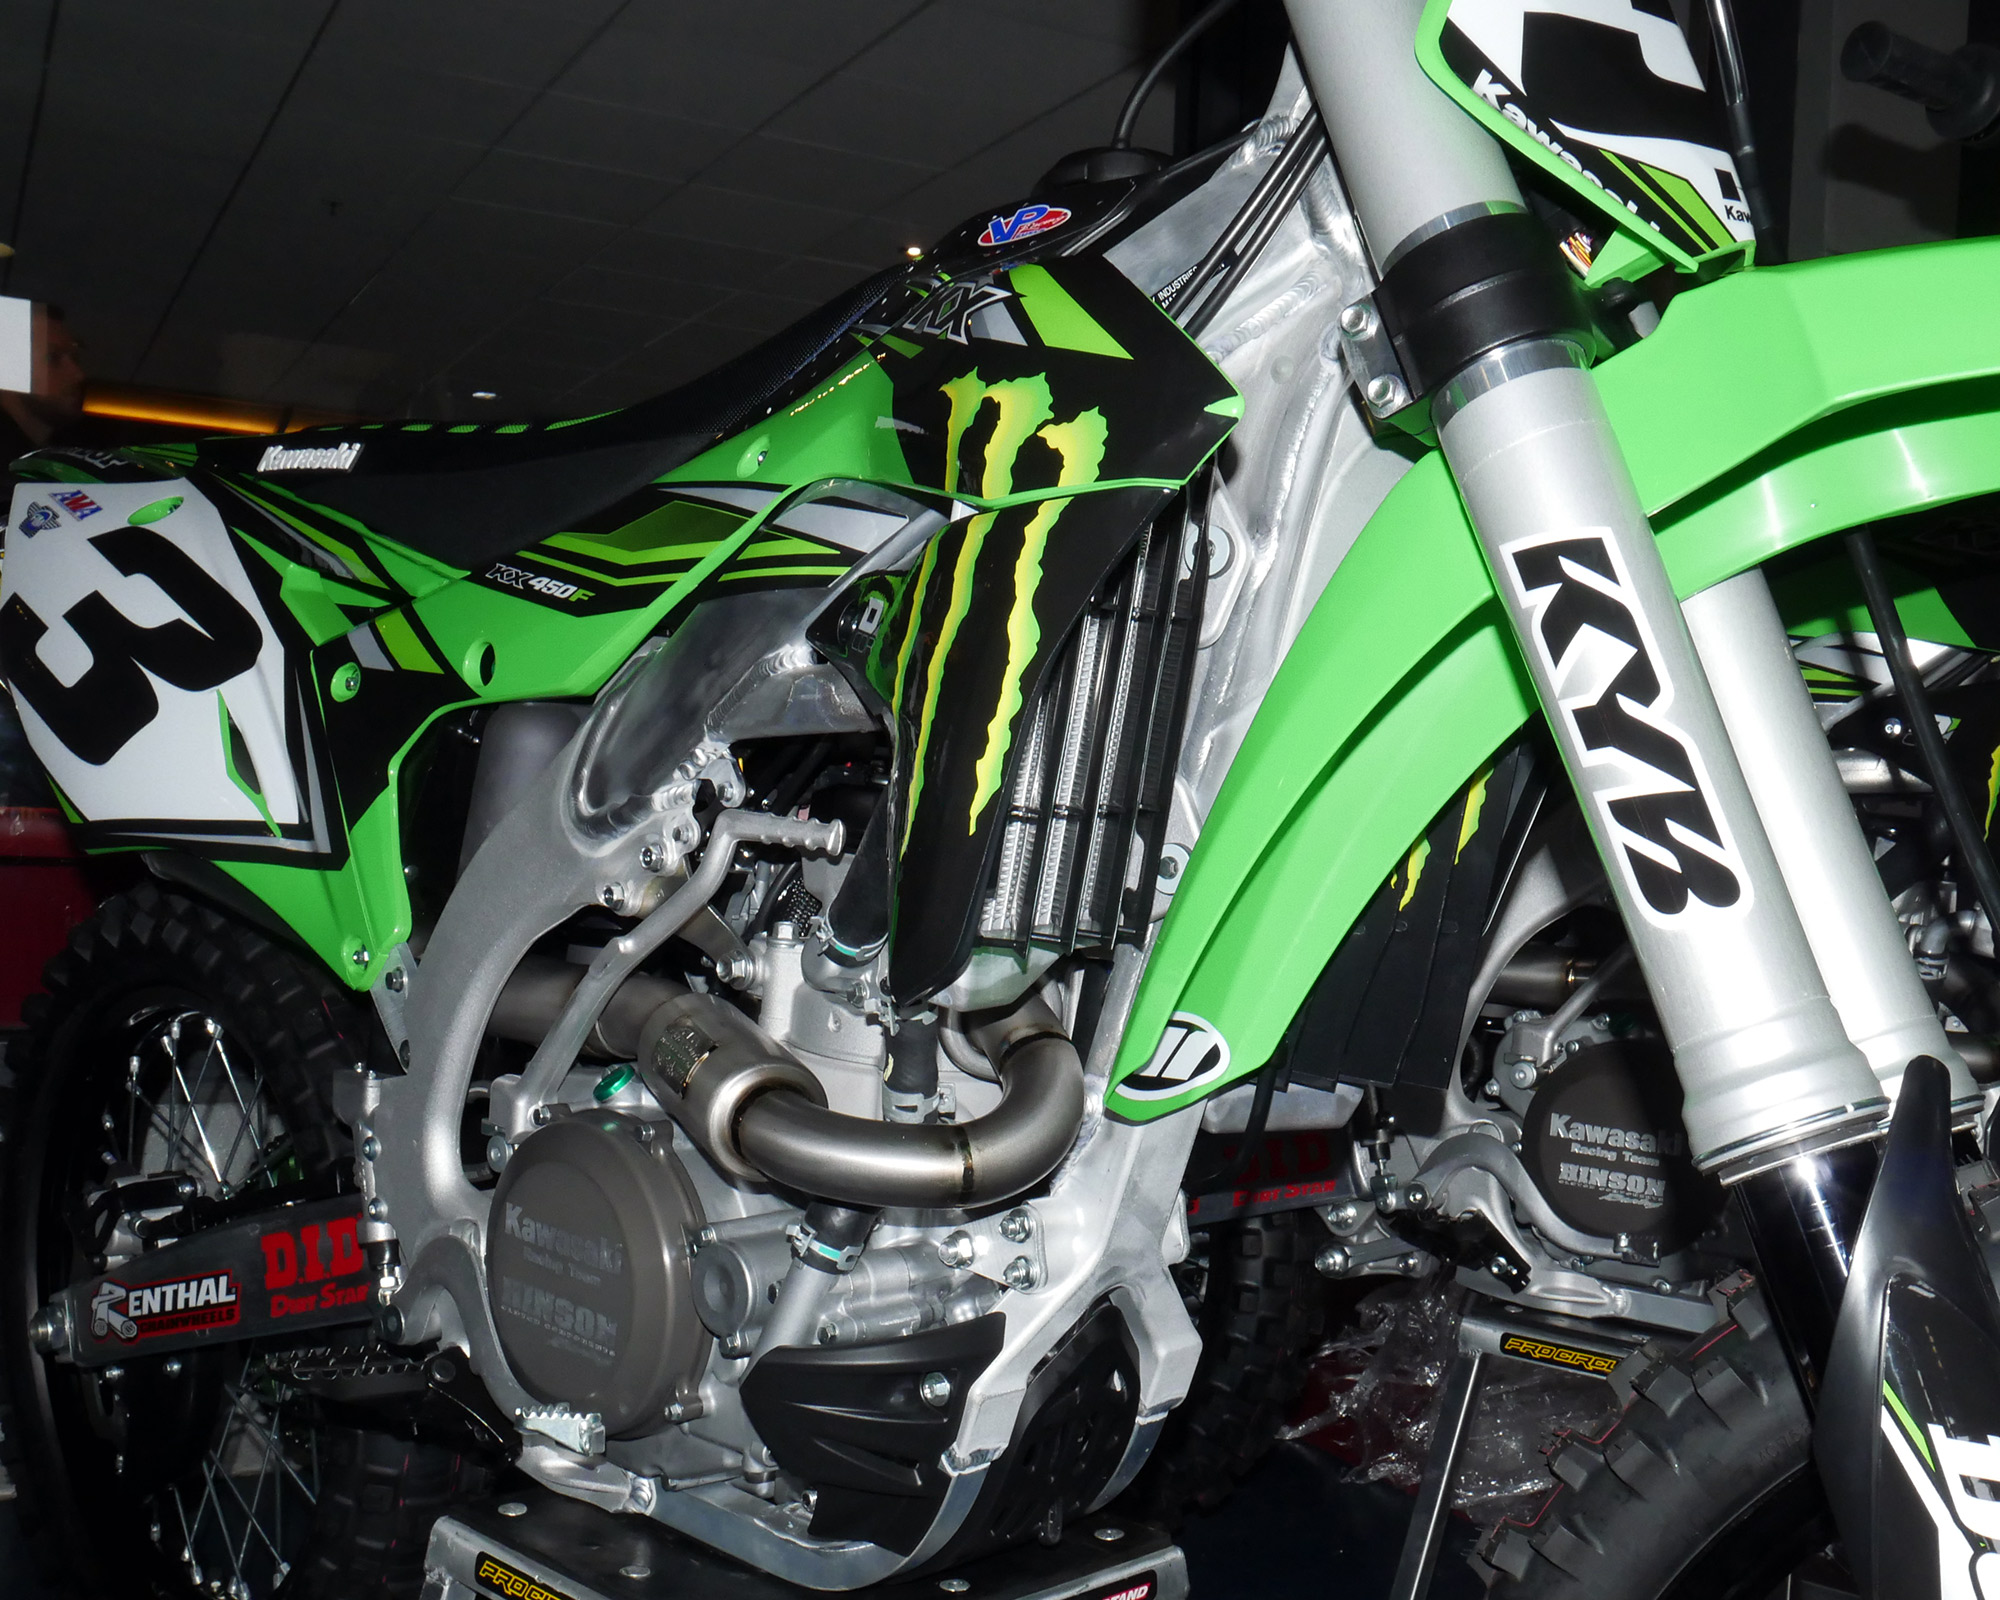 tomac-bike-right-1010517.jpg